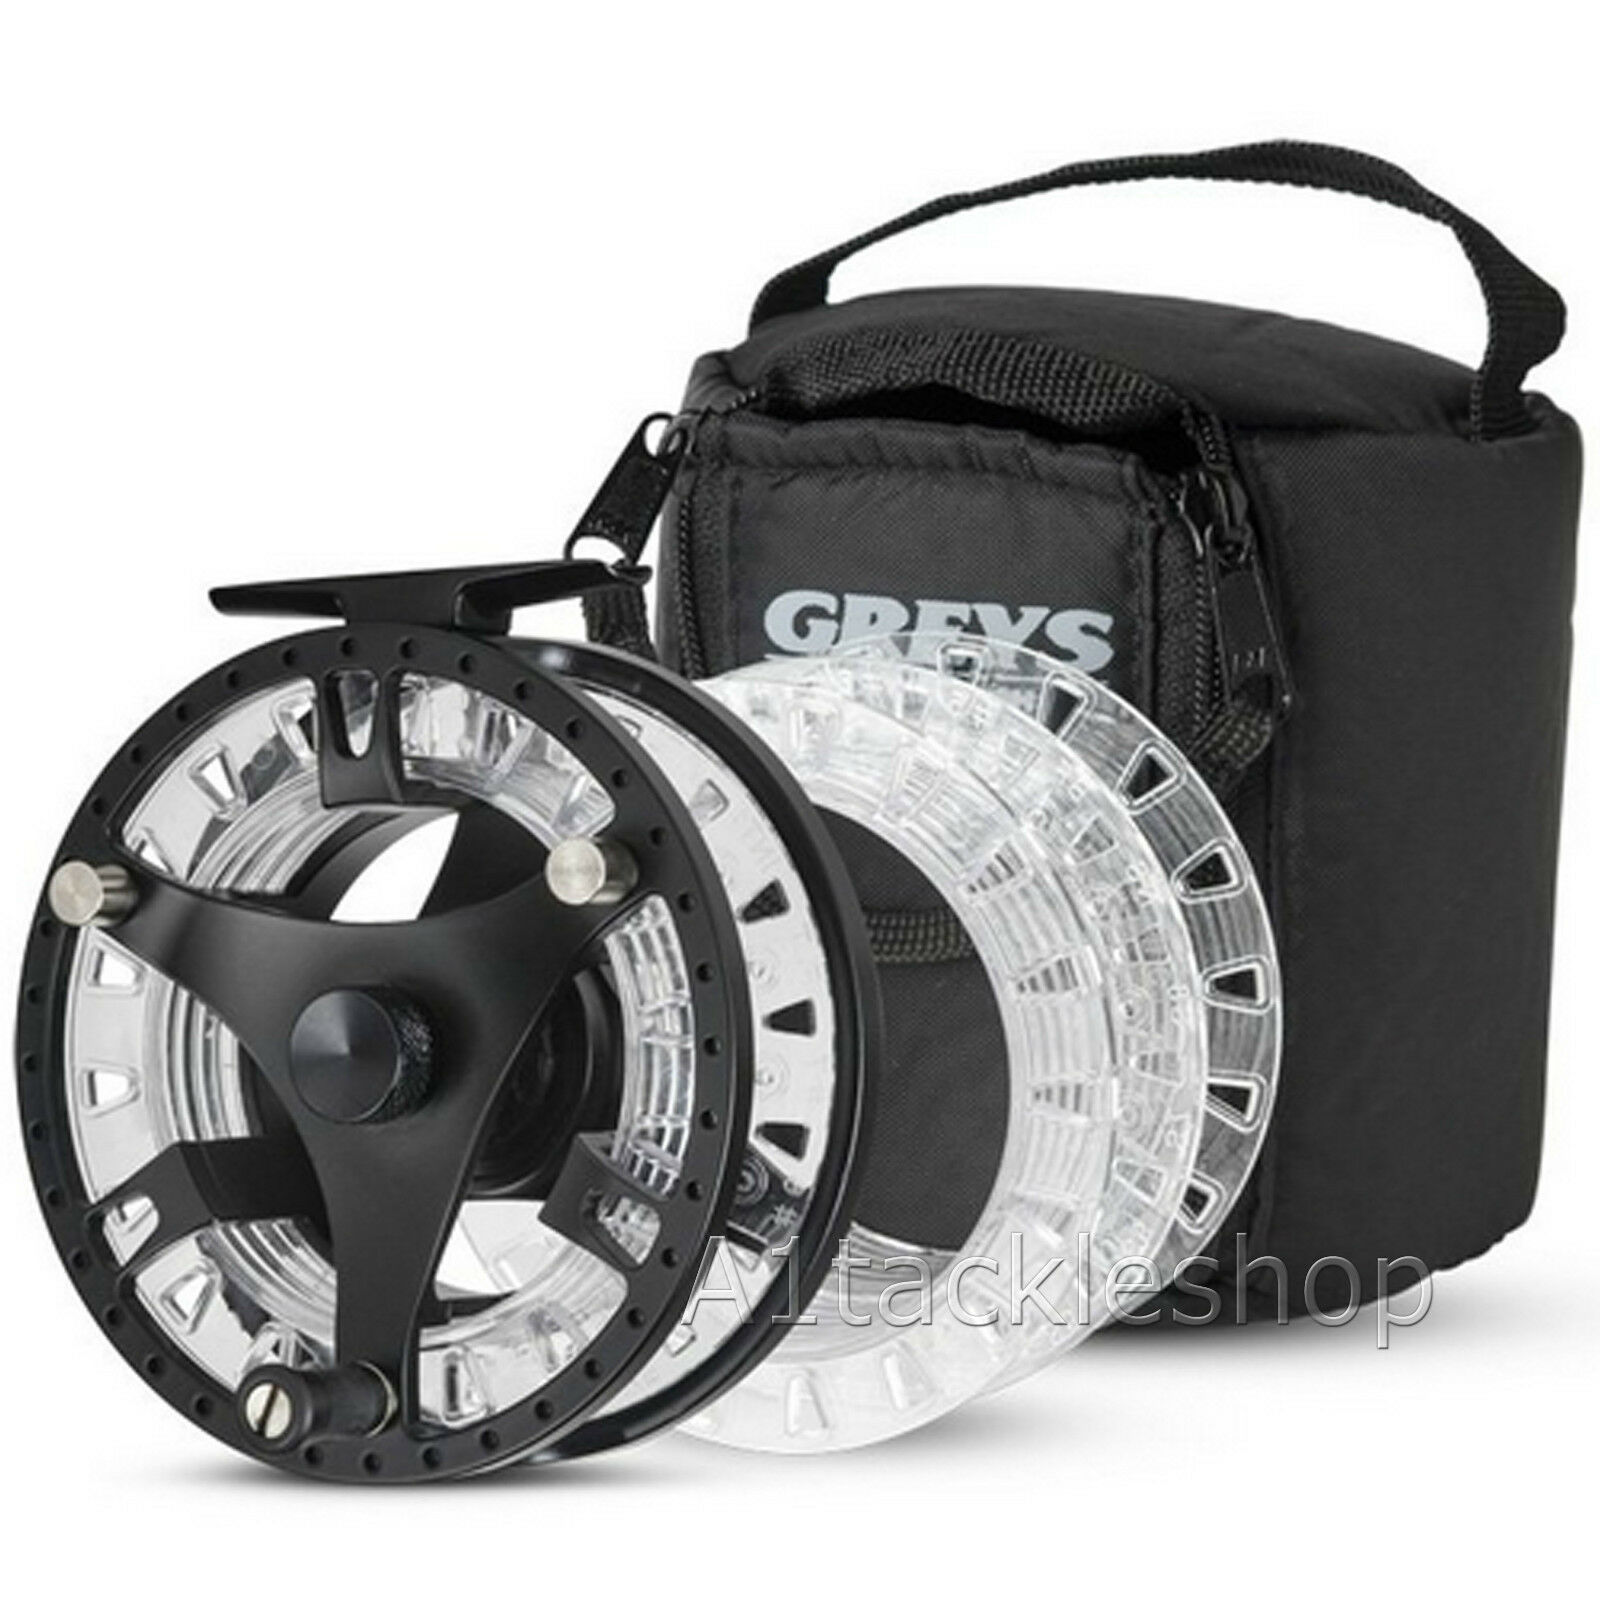 Greys GTS 500 Series Fly Fishing  Reel  shop now